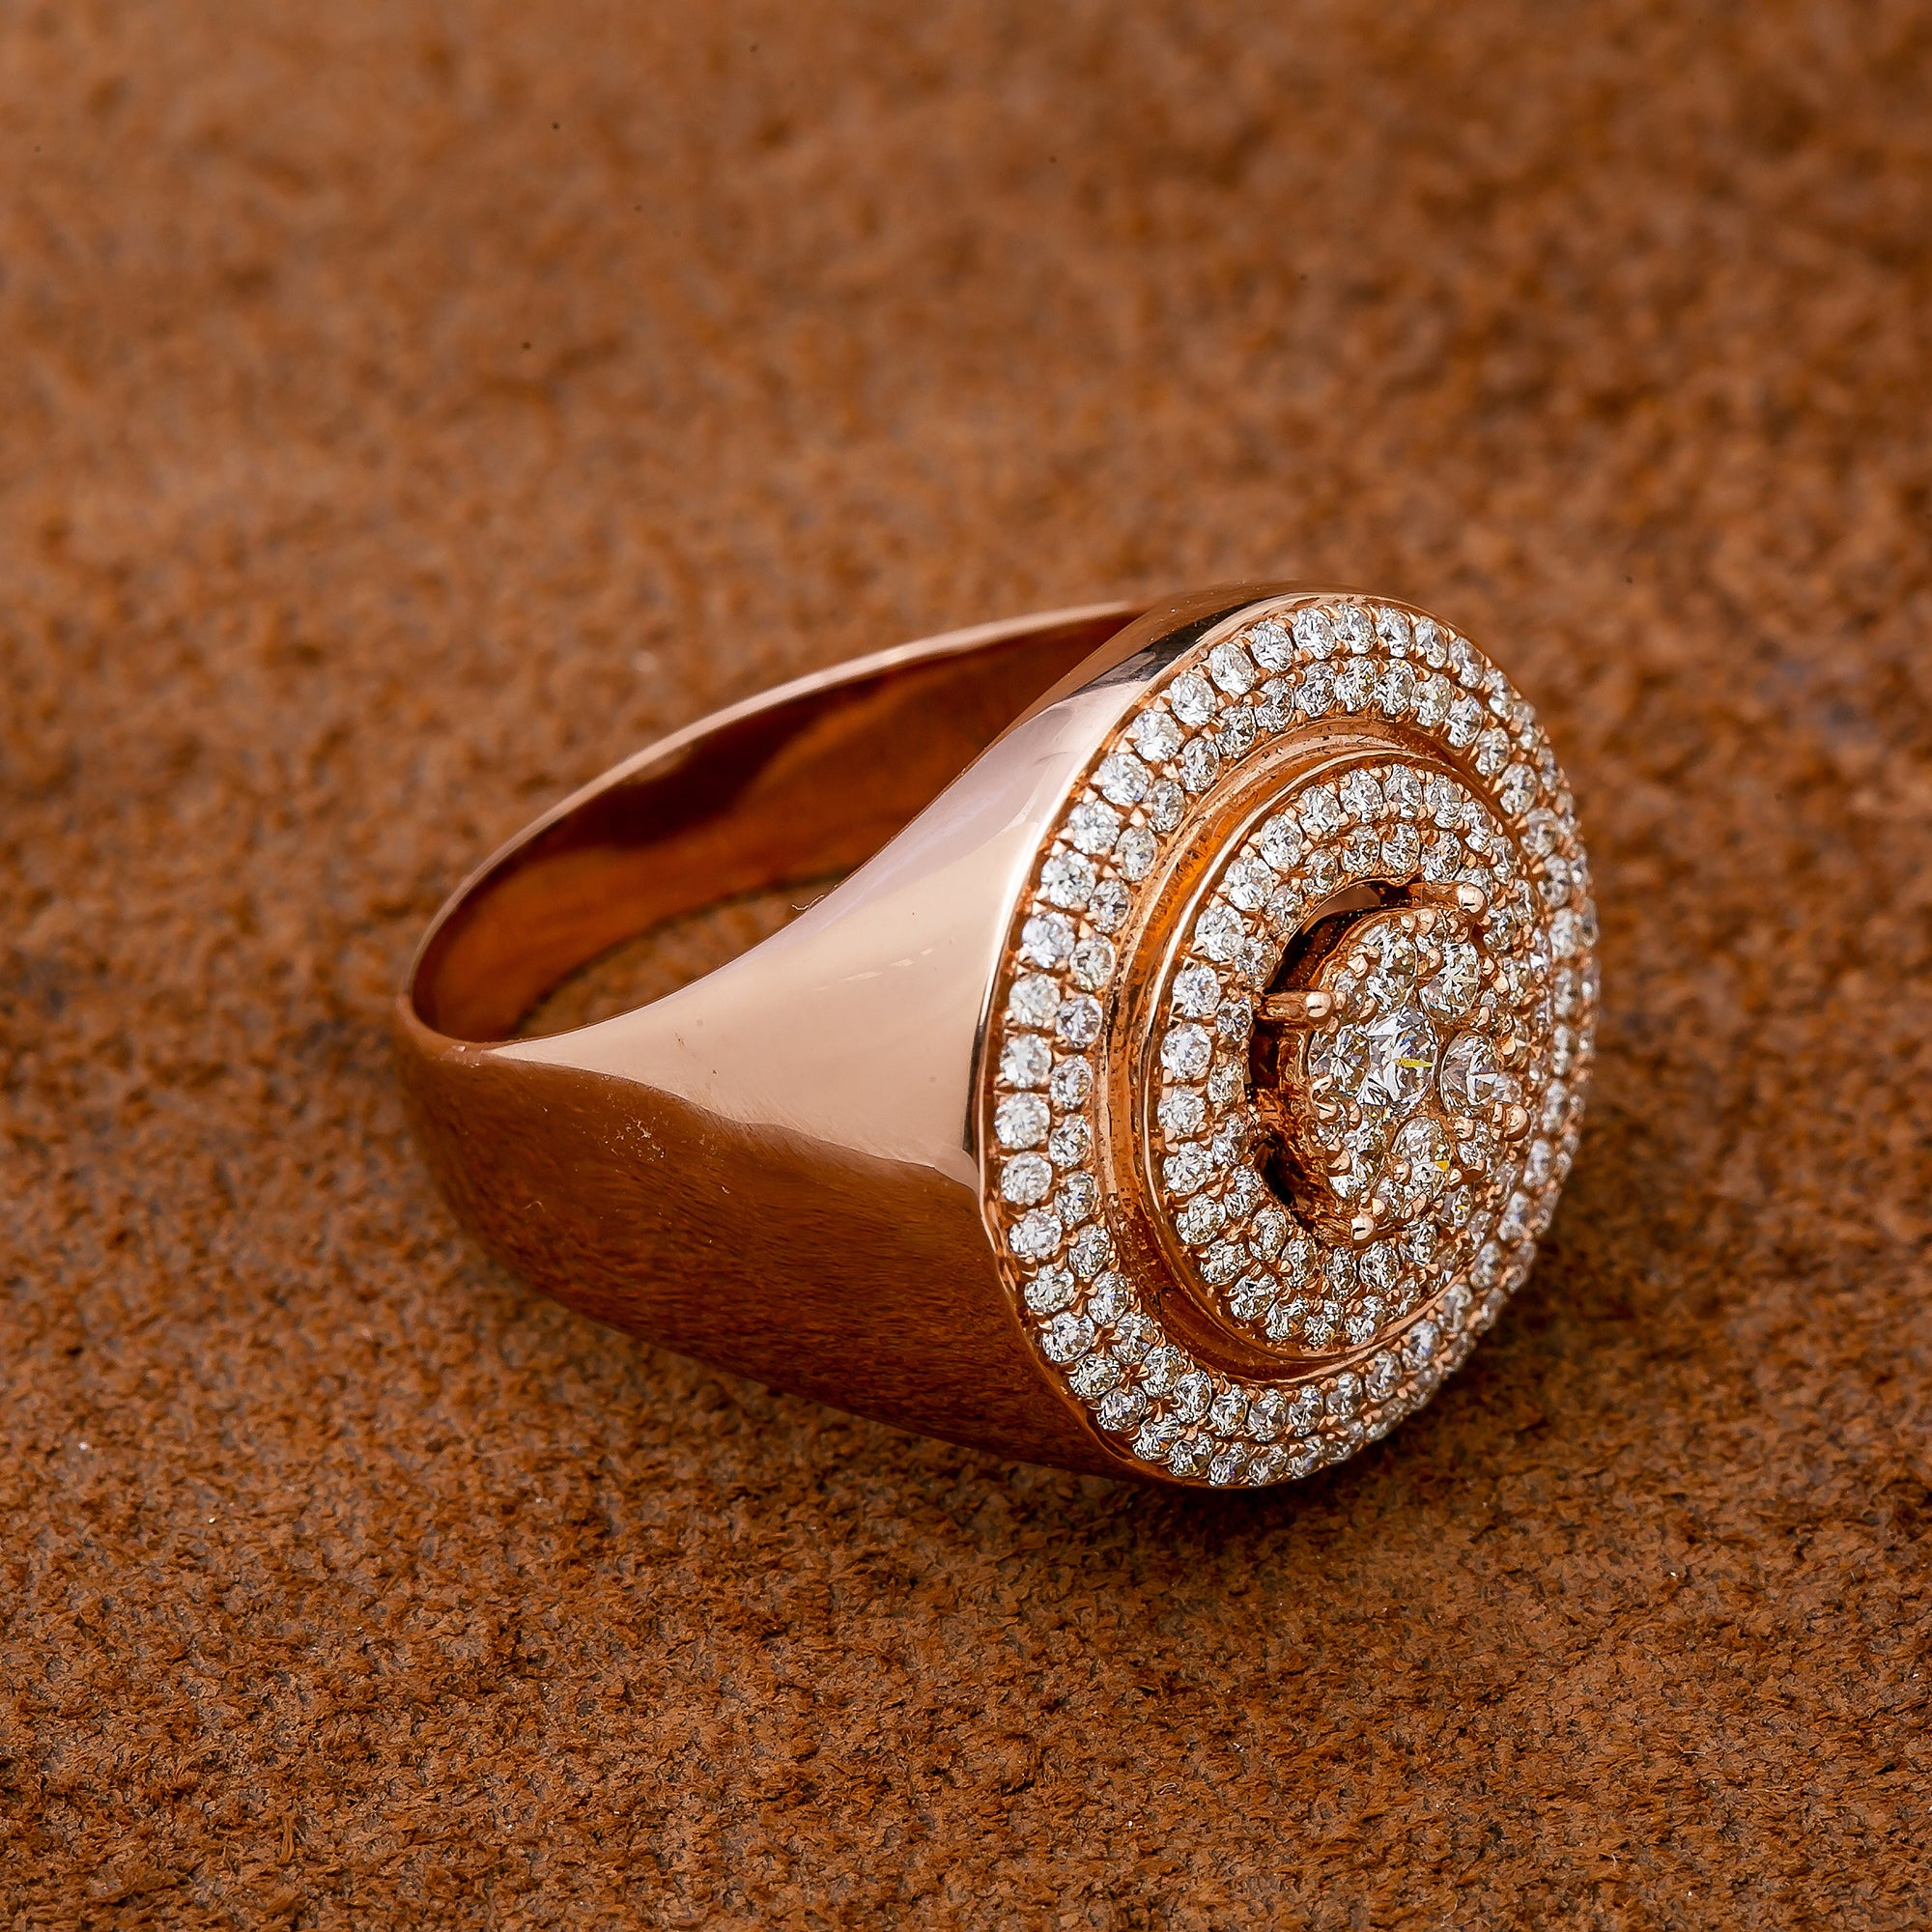 Unisex 14K Rose Gold Fancy Diamond Ring